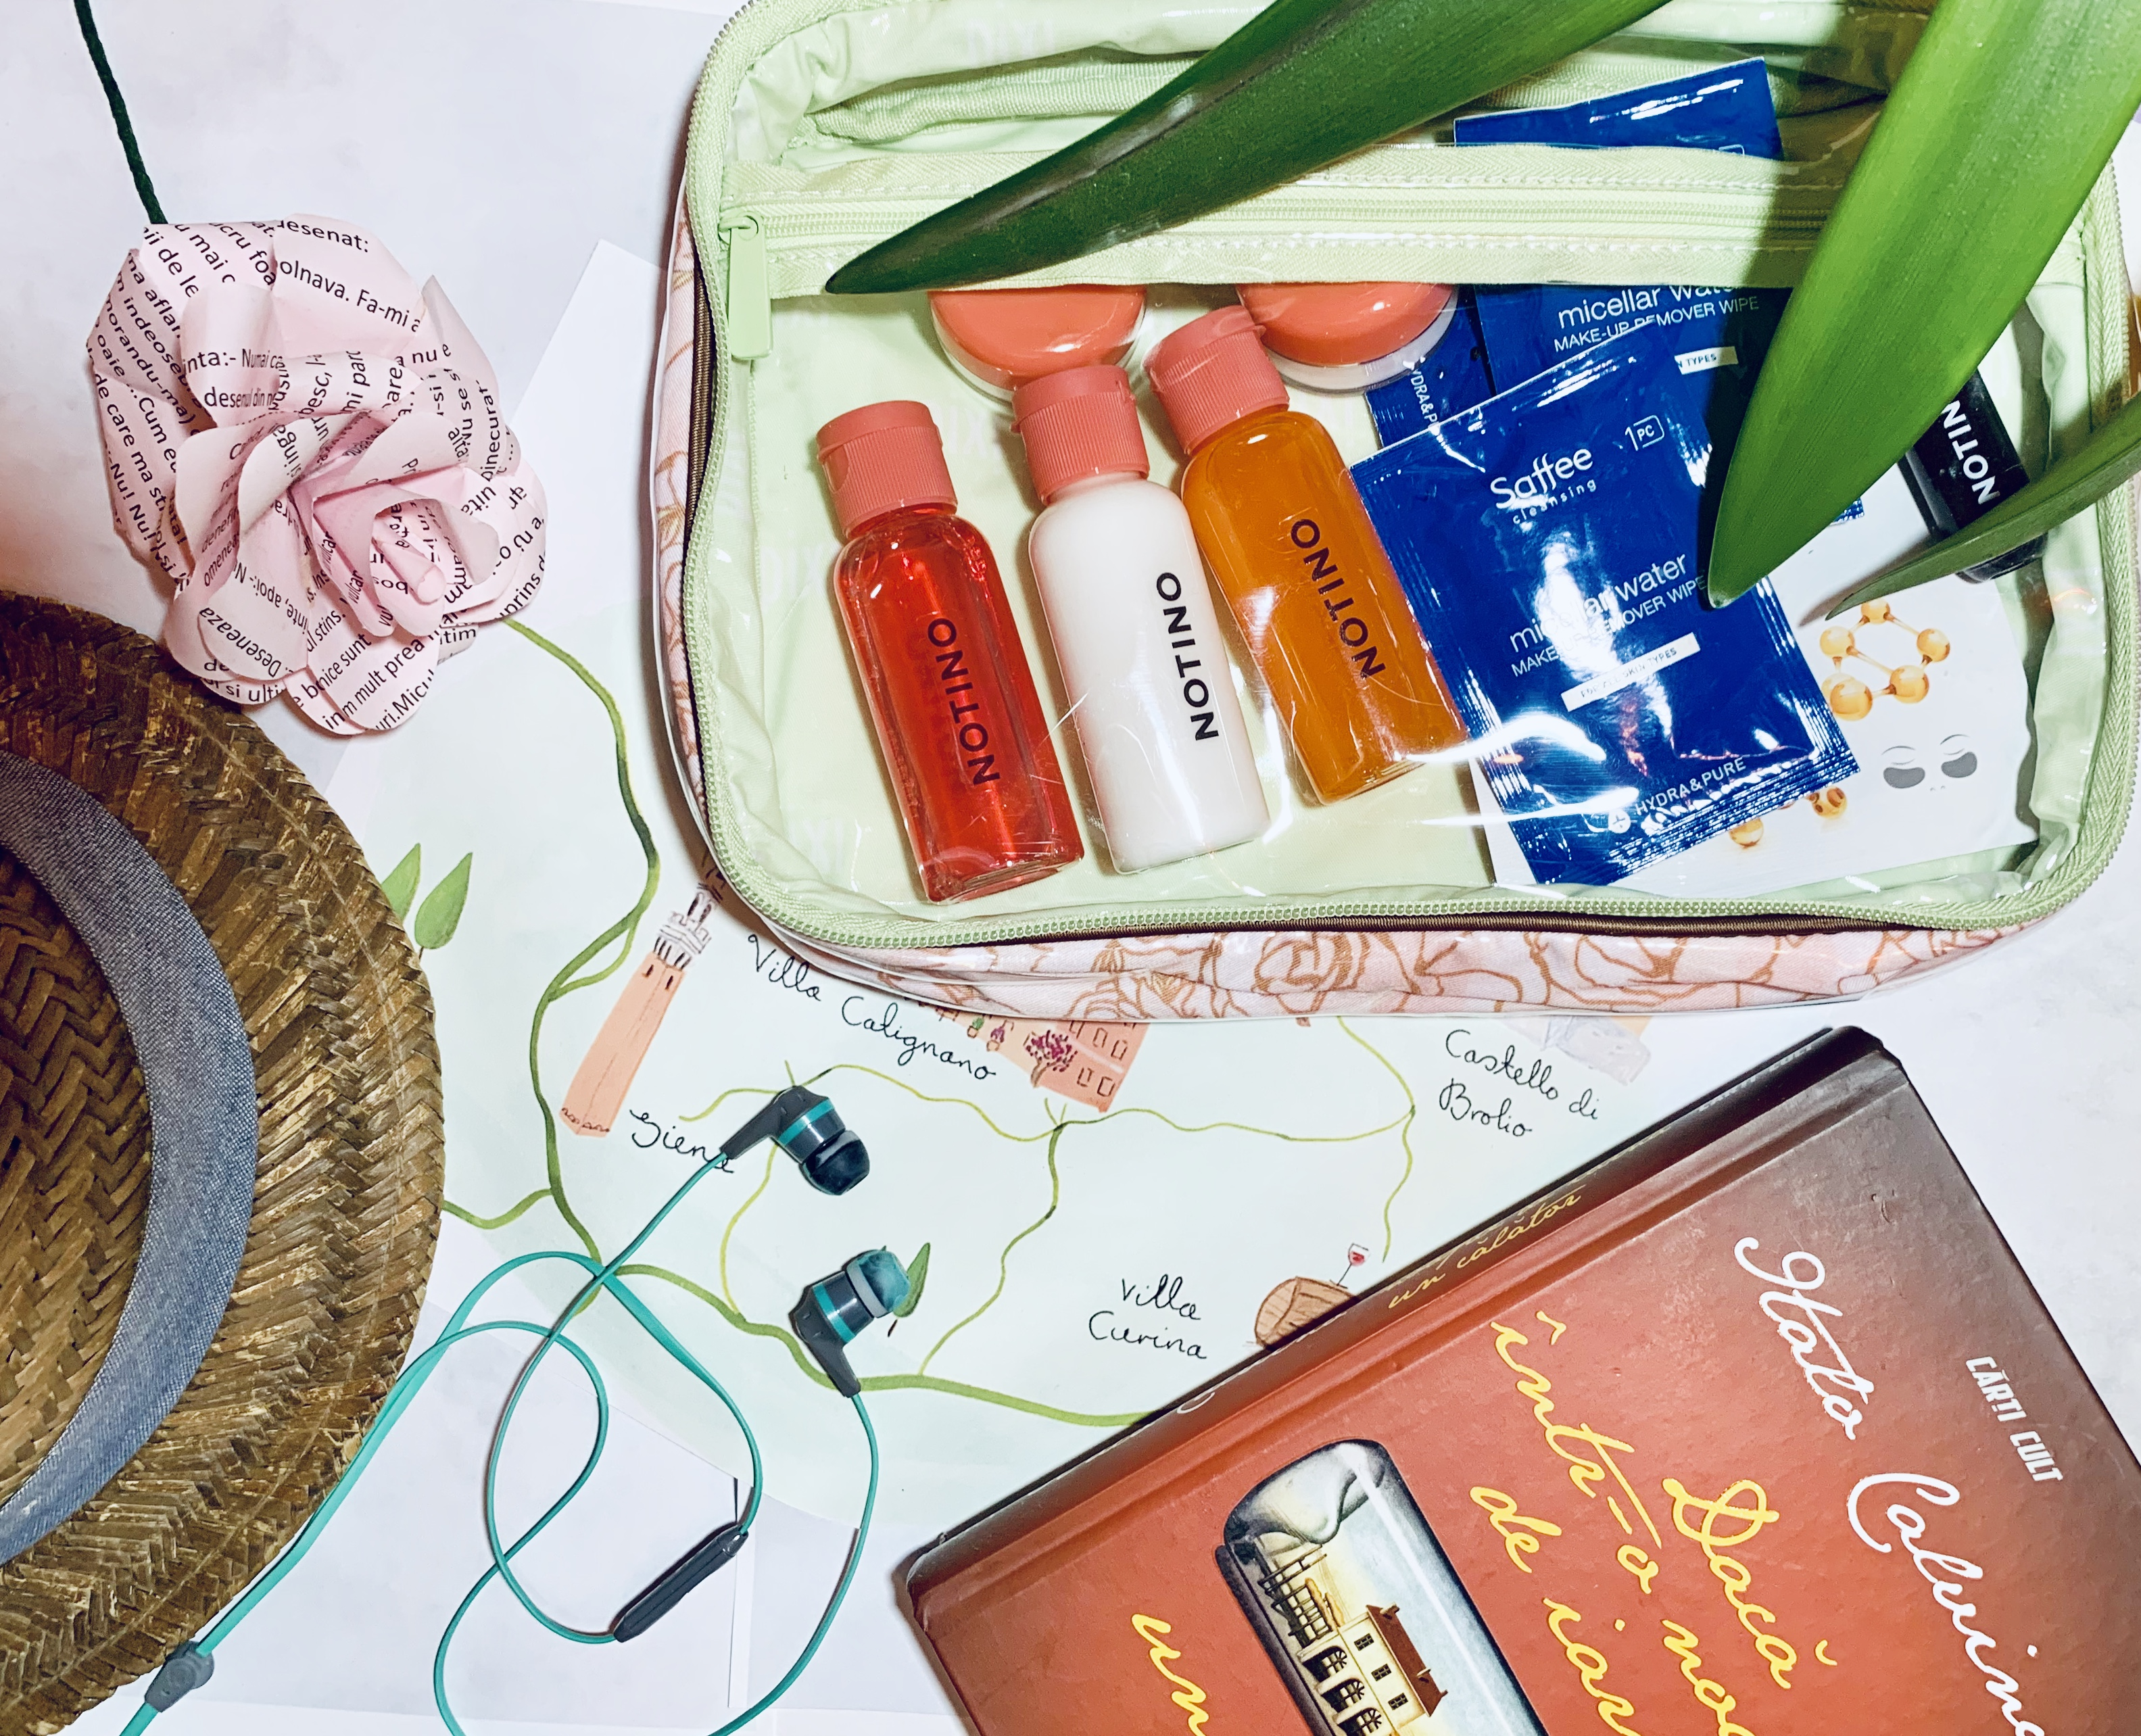 travel kit calatorie recipiente reincarcabile